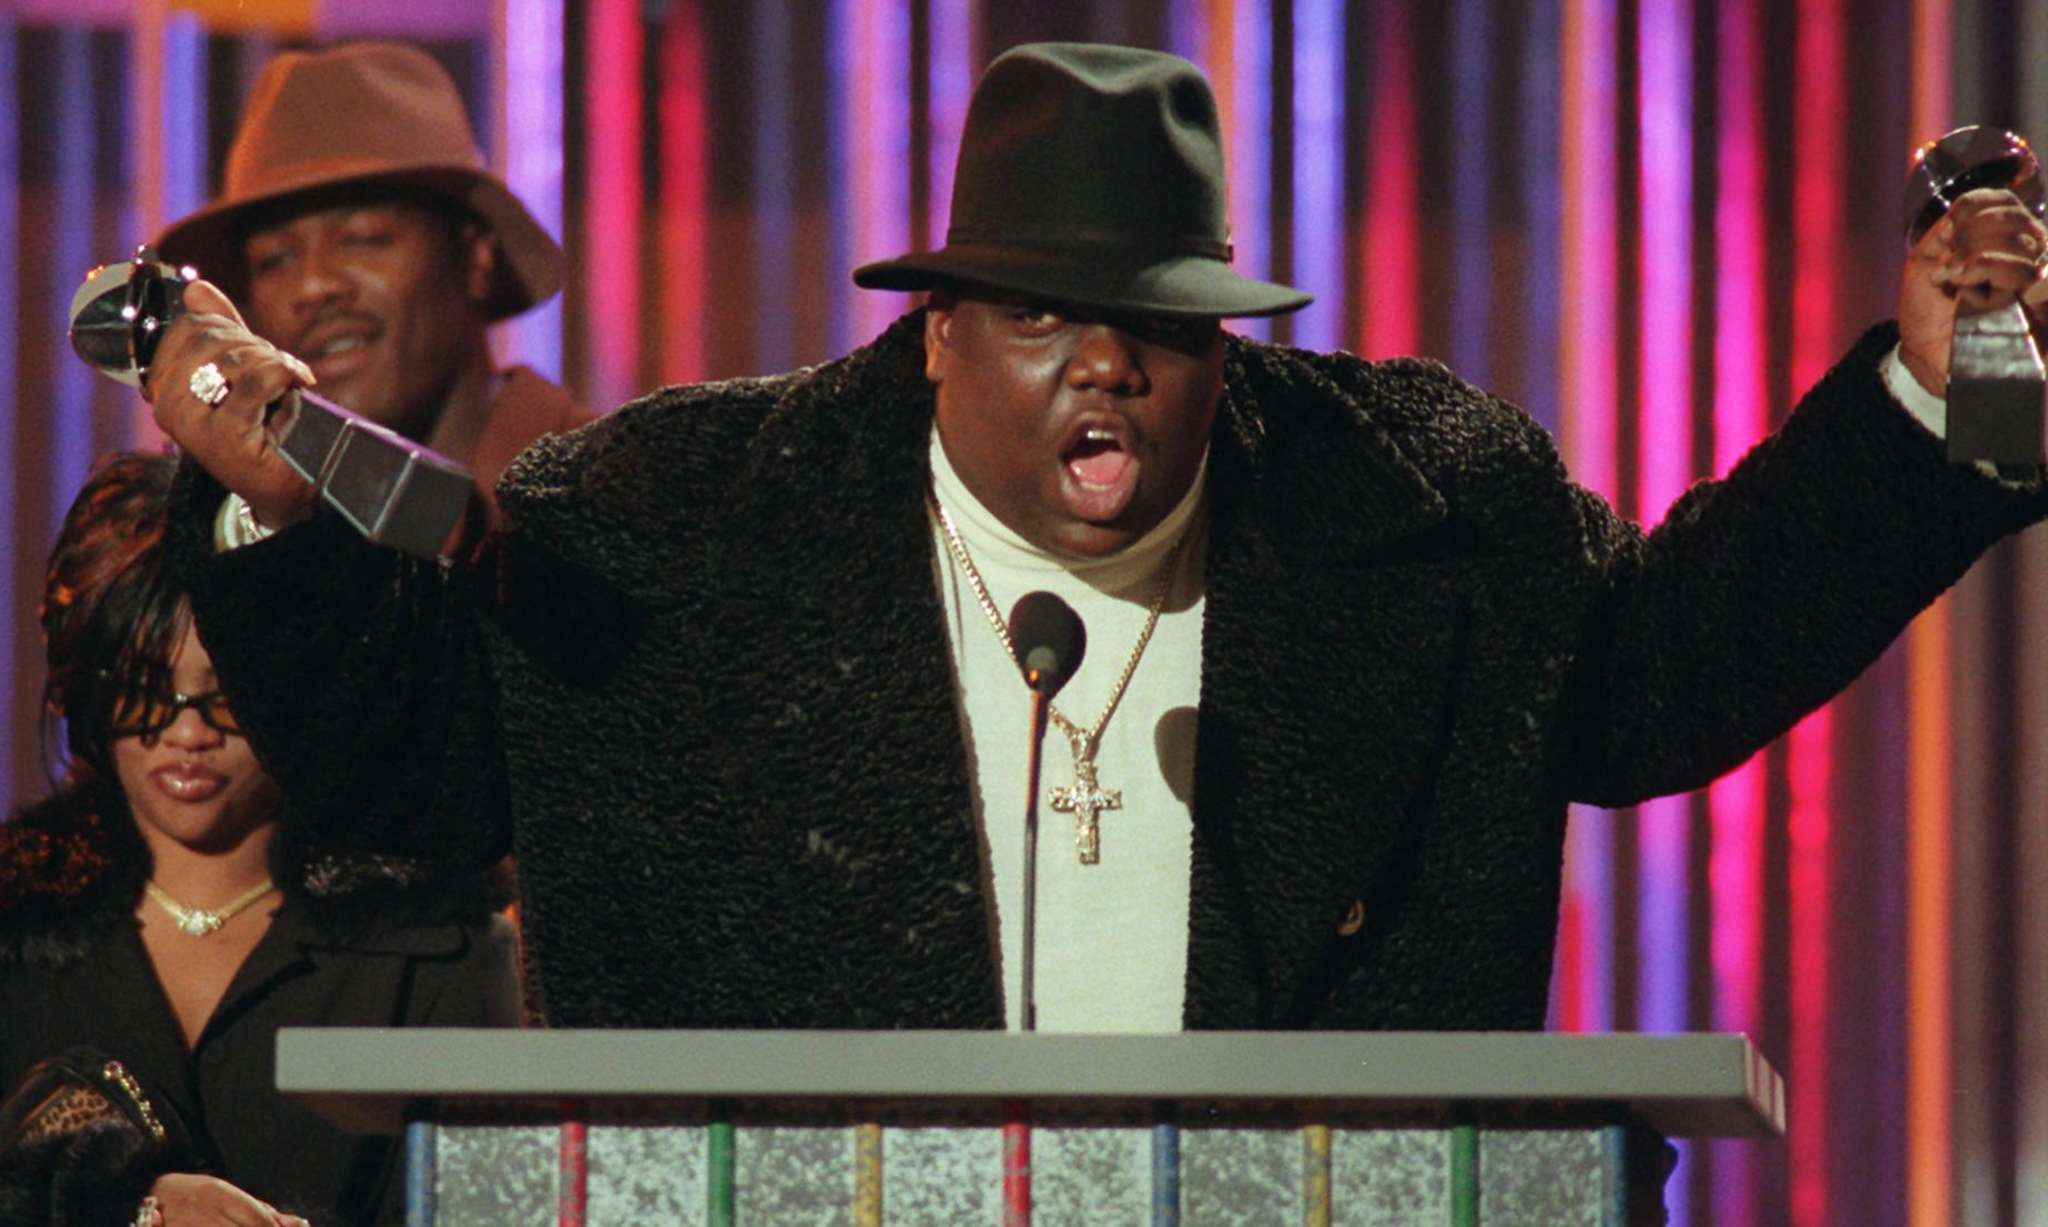 Notorious B.I.G. will be heard again in a duet.